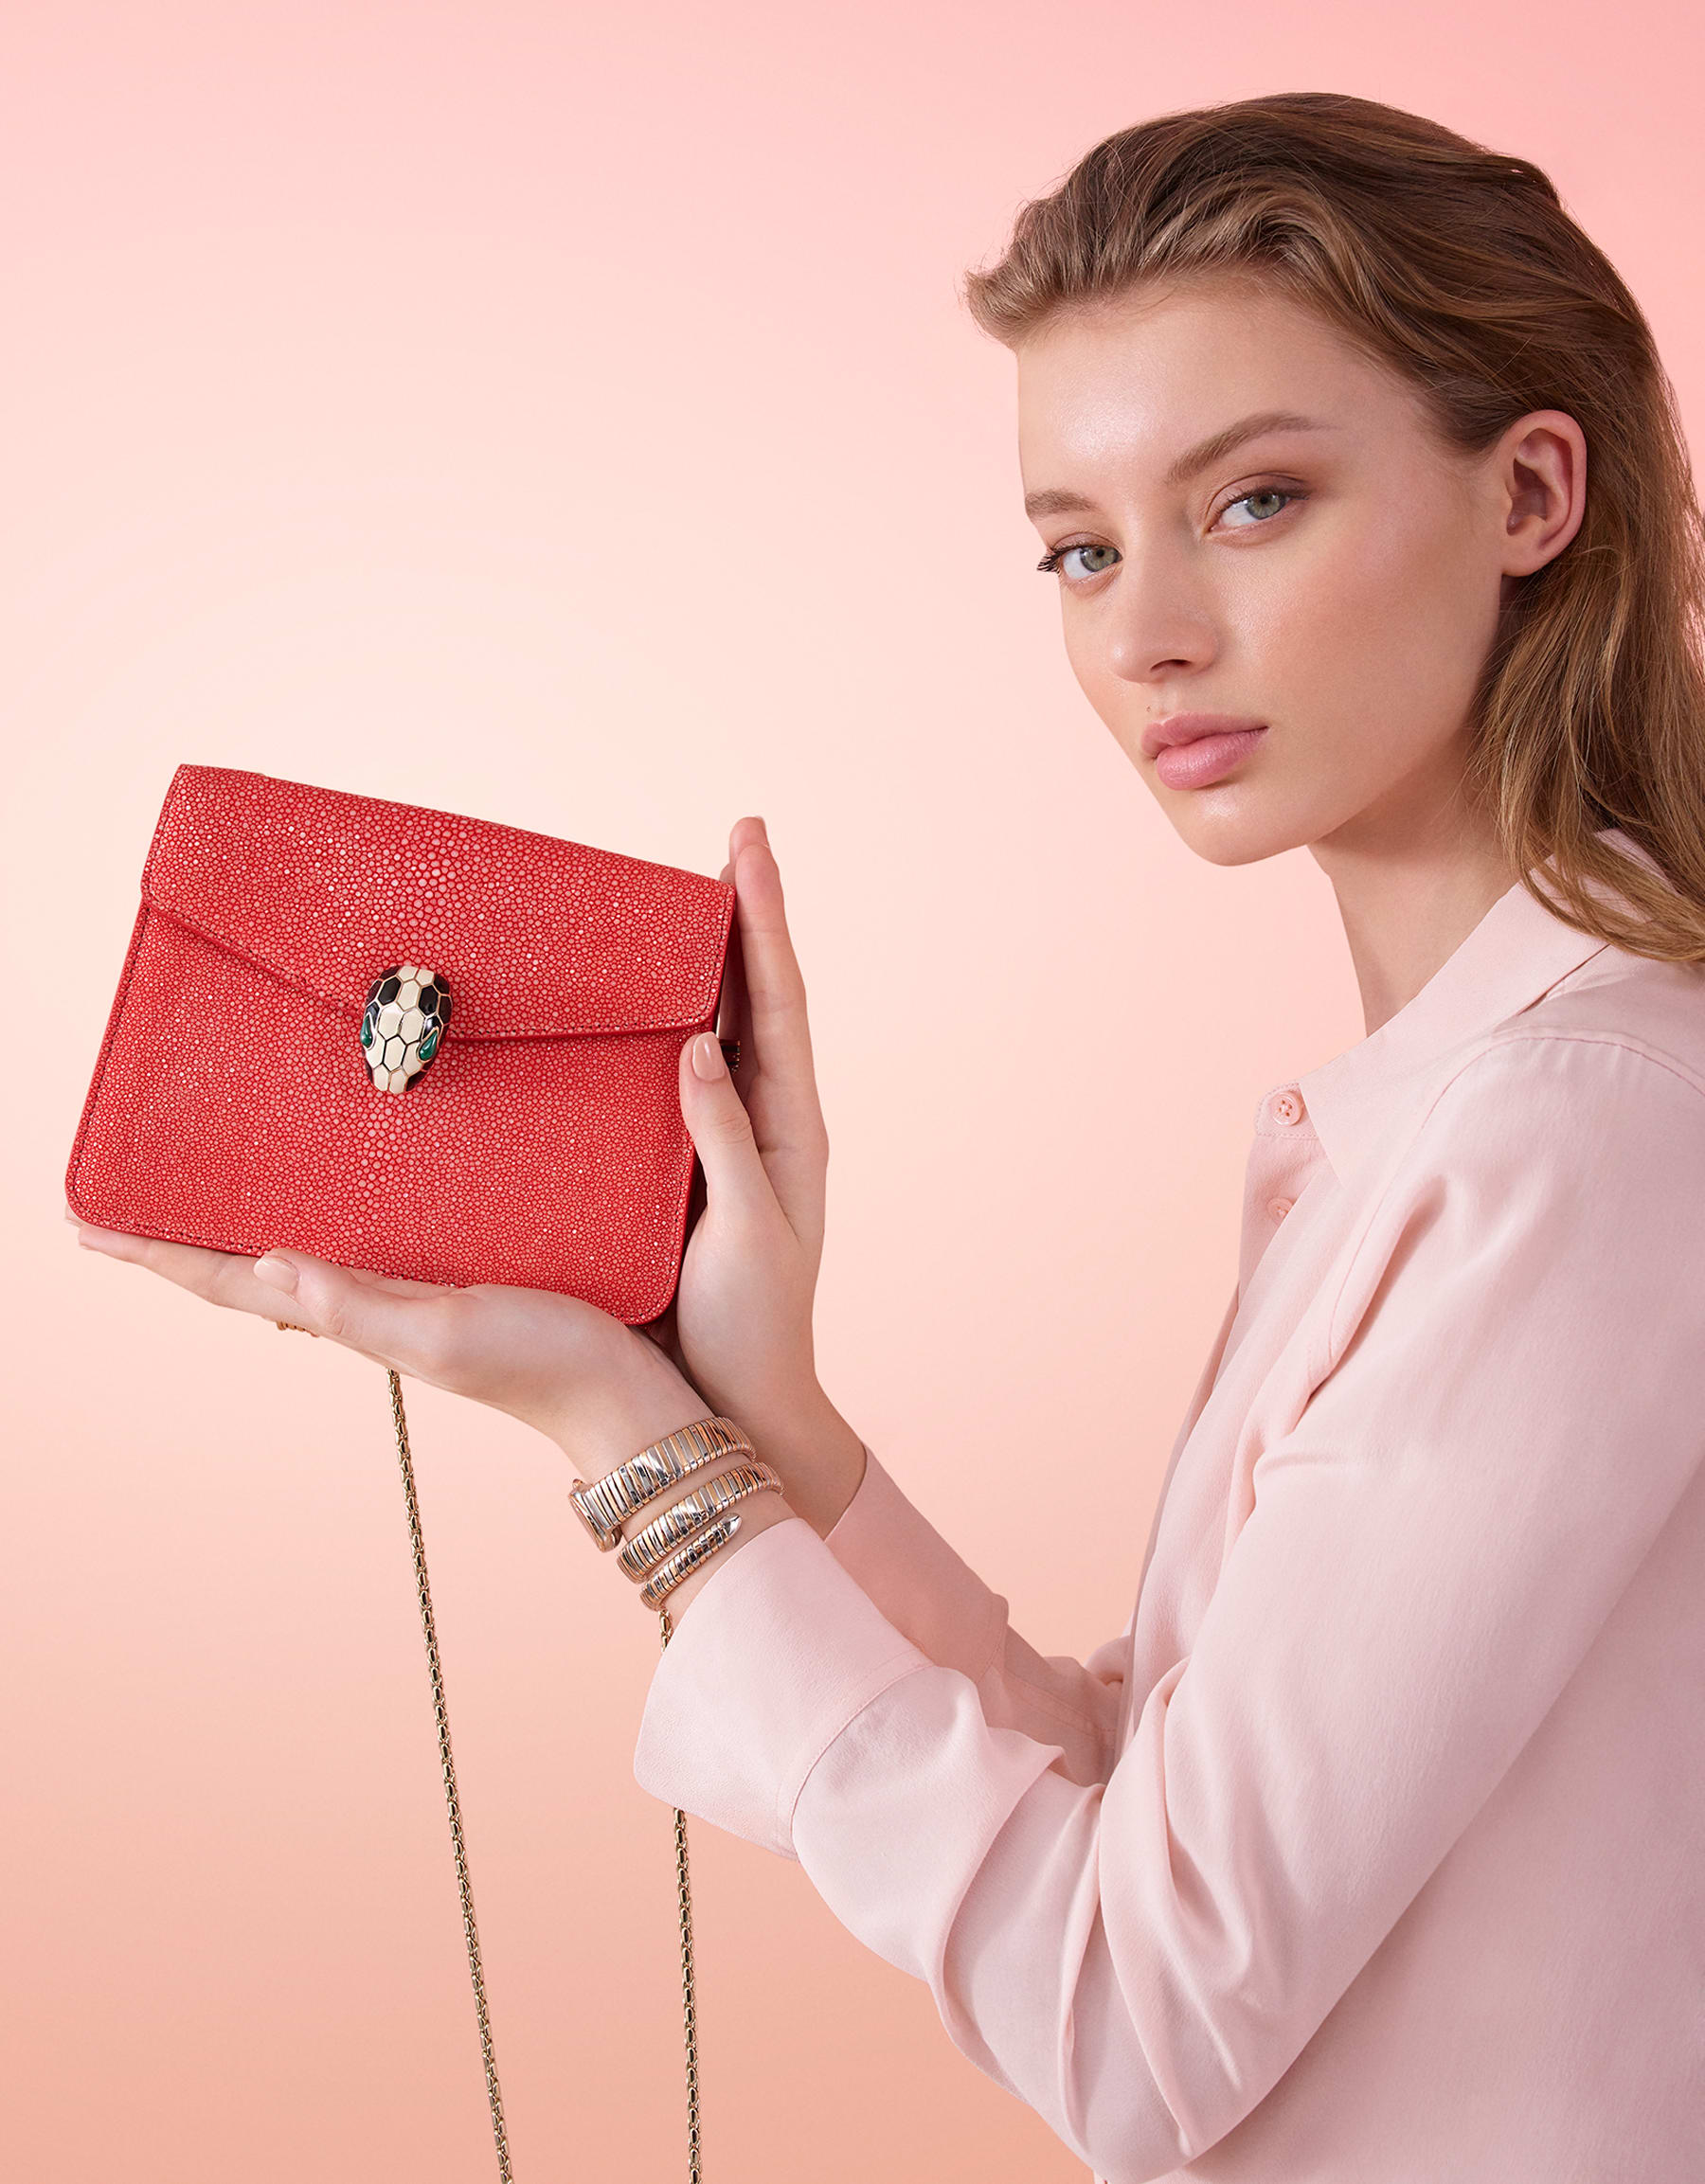 Serpenti Forever crossbody bag in sea star coral galuchat skin. Snakehead closure in light gold plated brass decorated with black and white enamel, and green malachite eyes. 288059 image 5